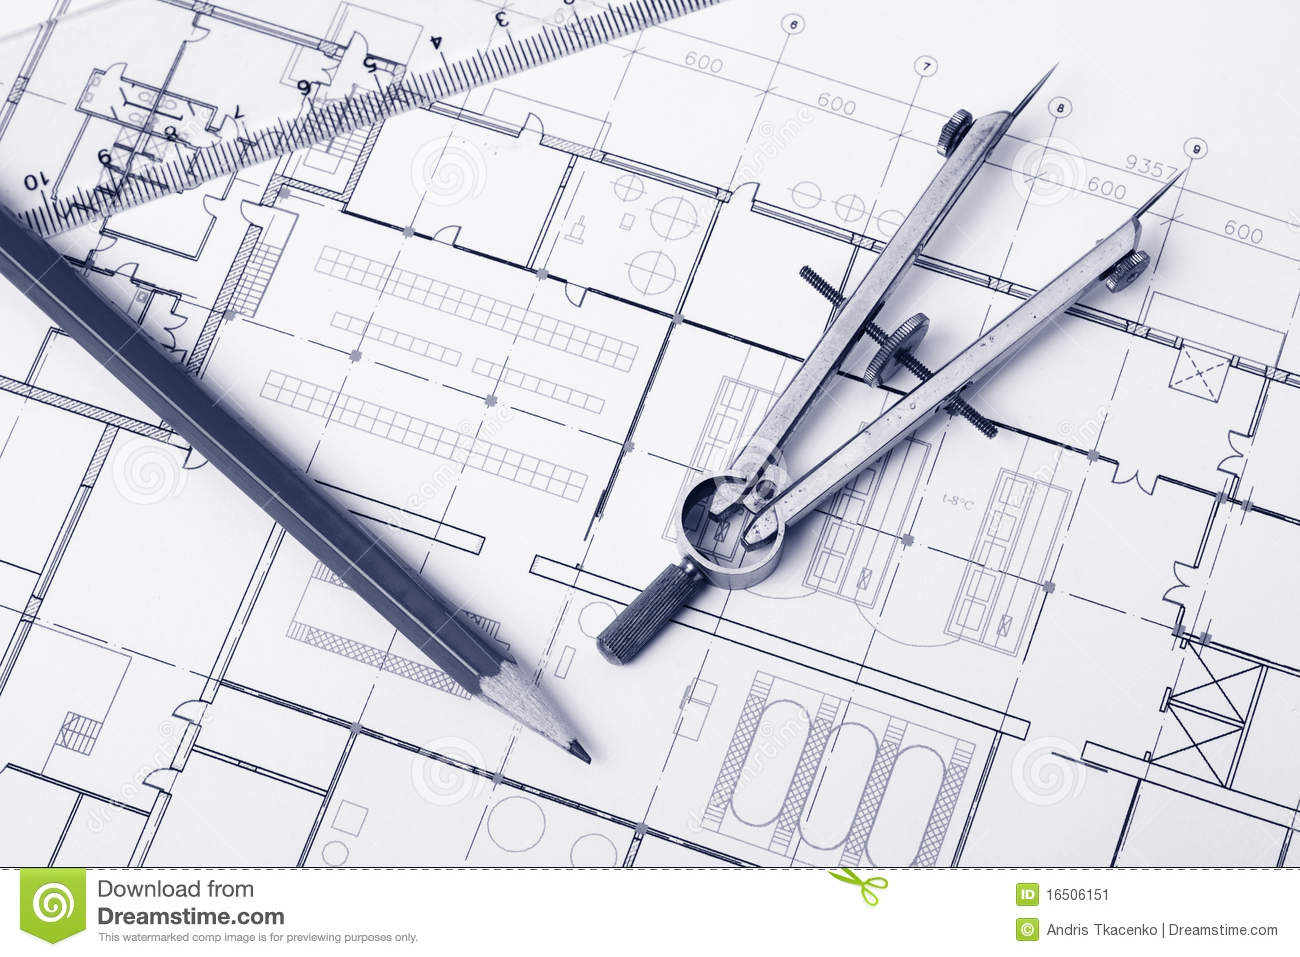 Pencil and divider on top of a floor plan tinted photo